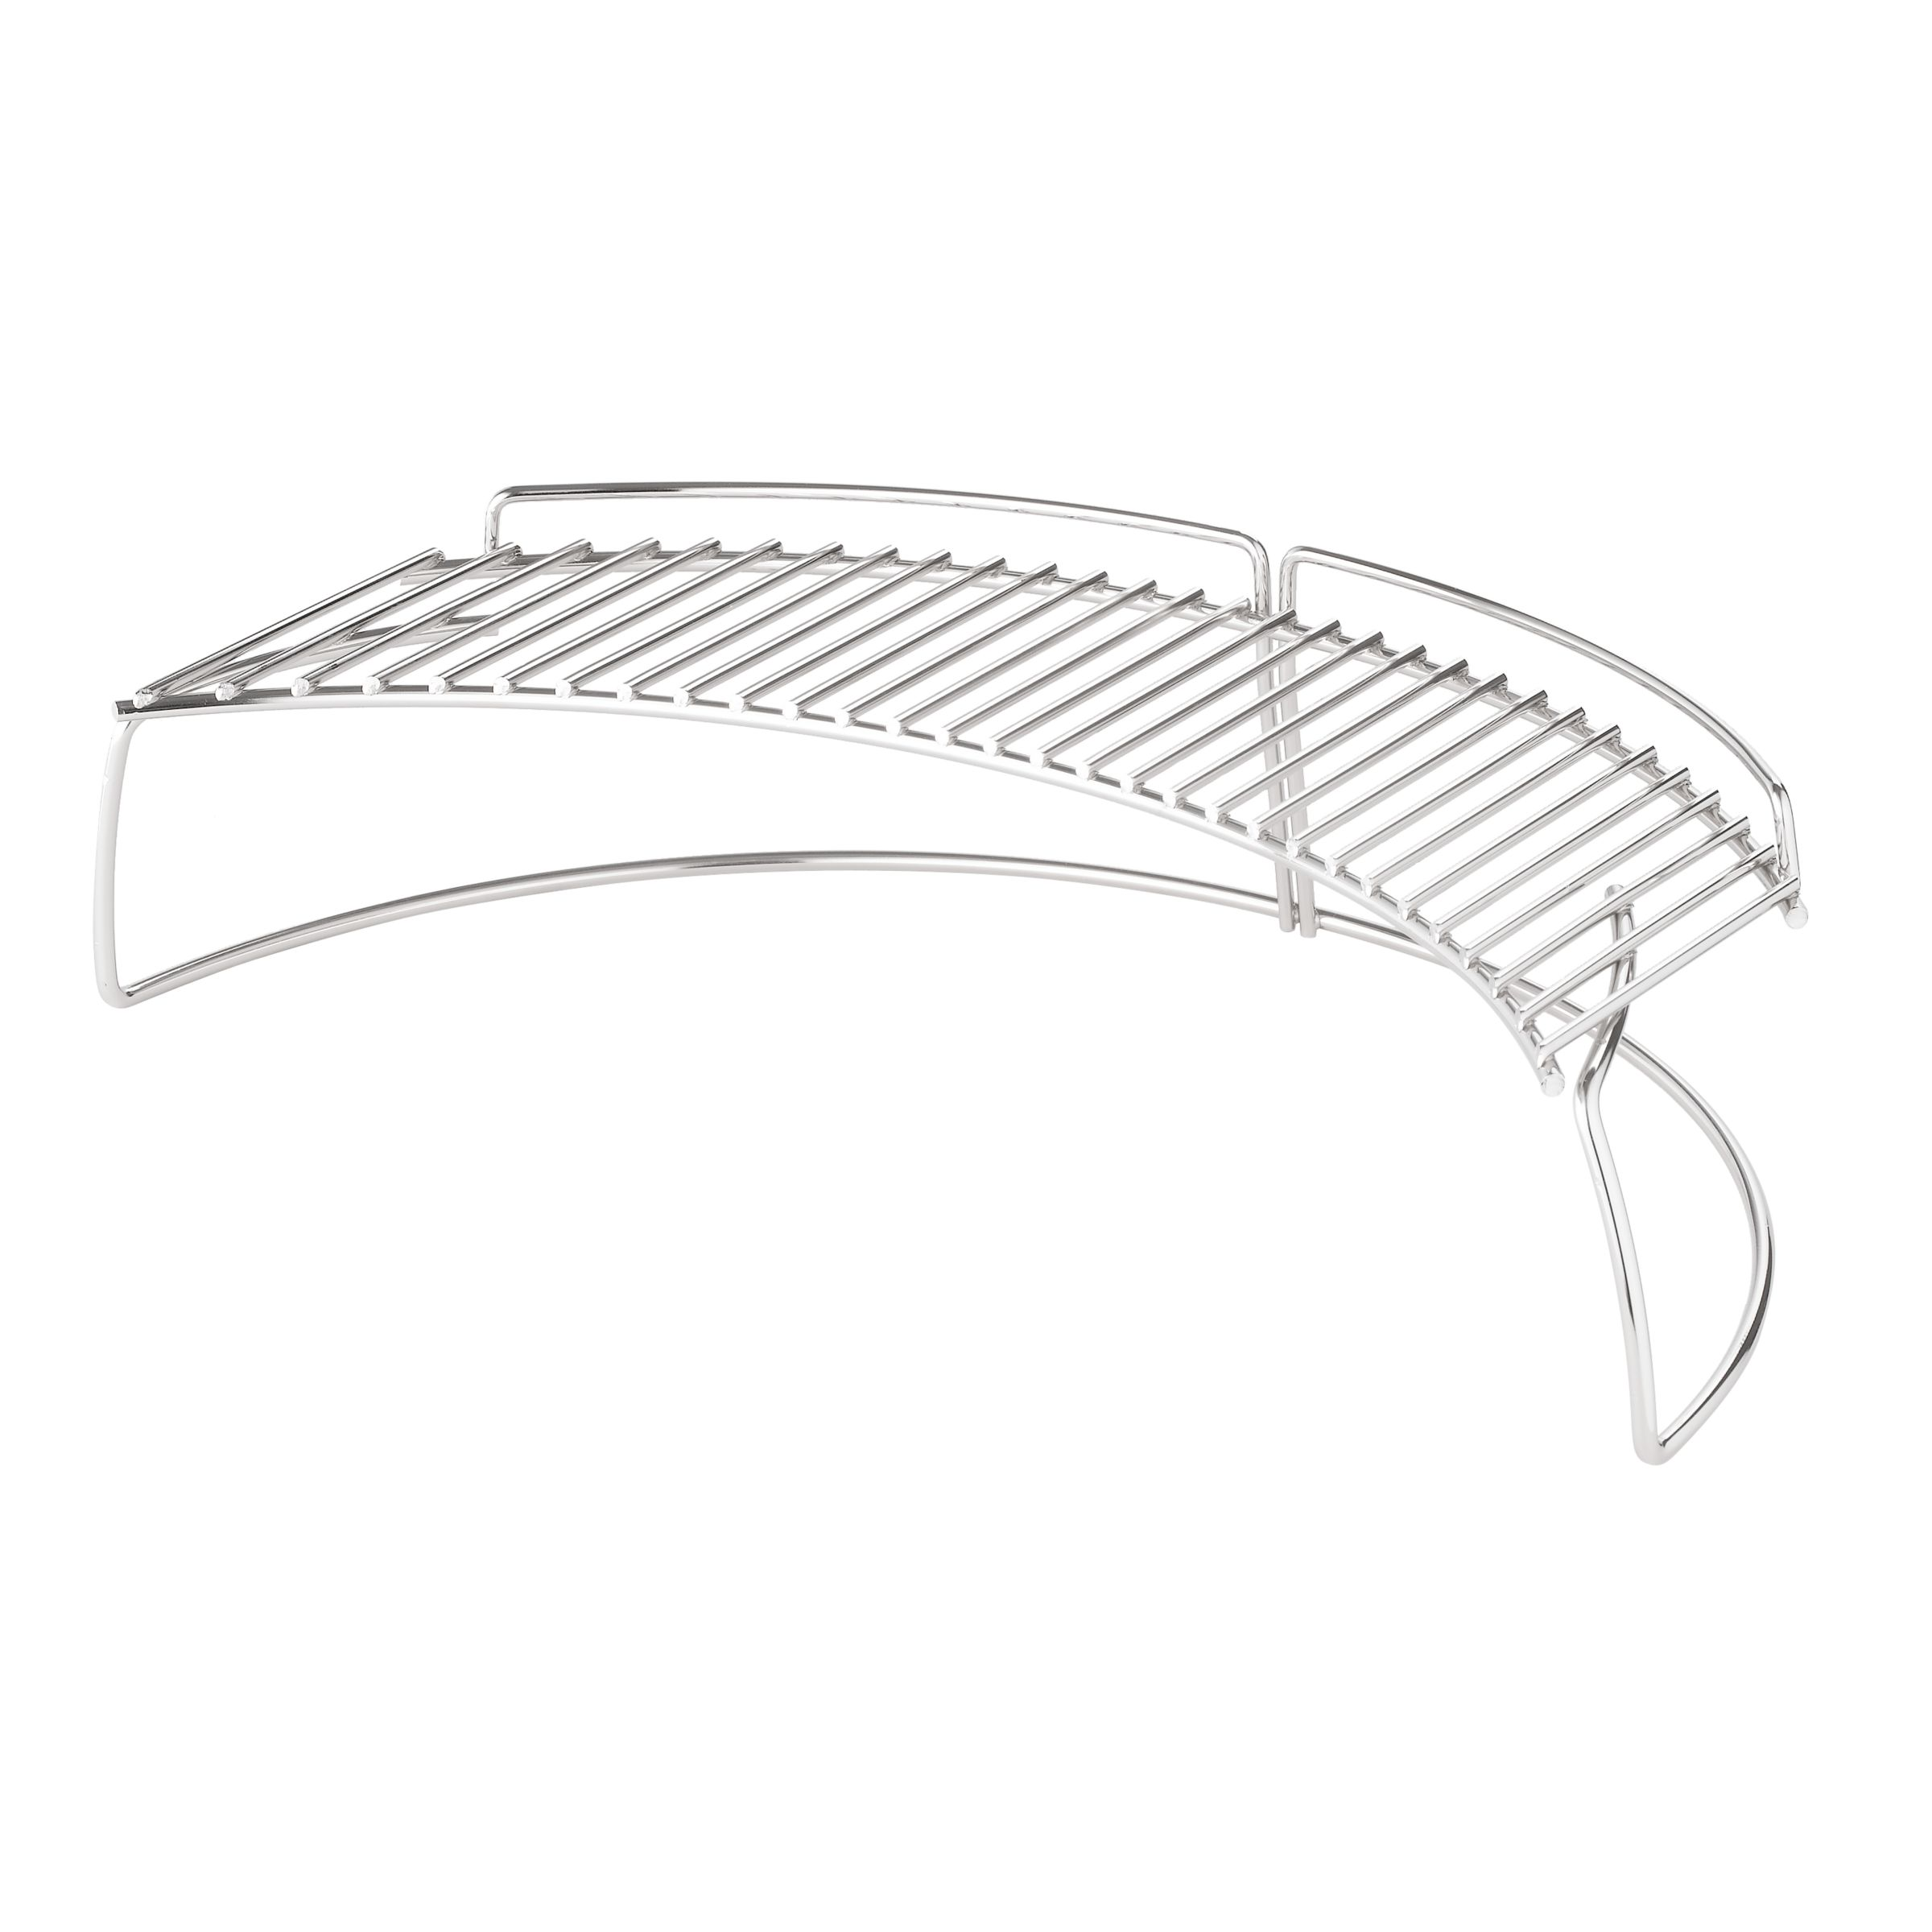 weber john lewis partners Discontinued Ray Bans weber original kettle bbq warming rack